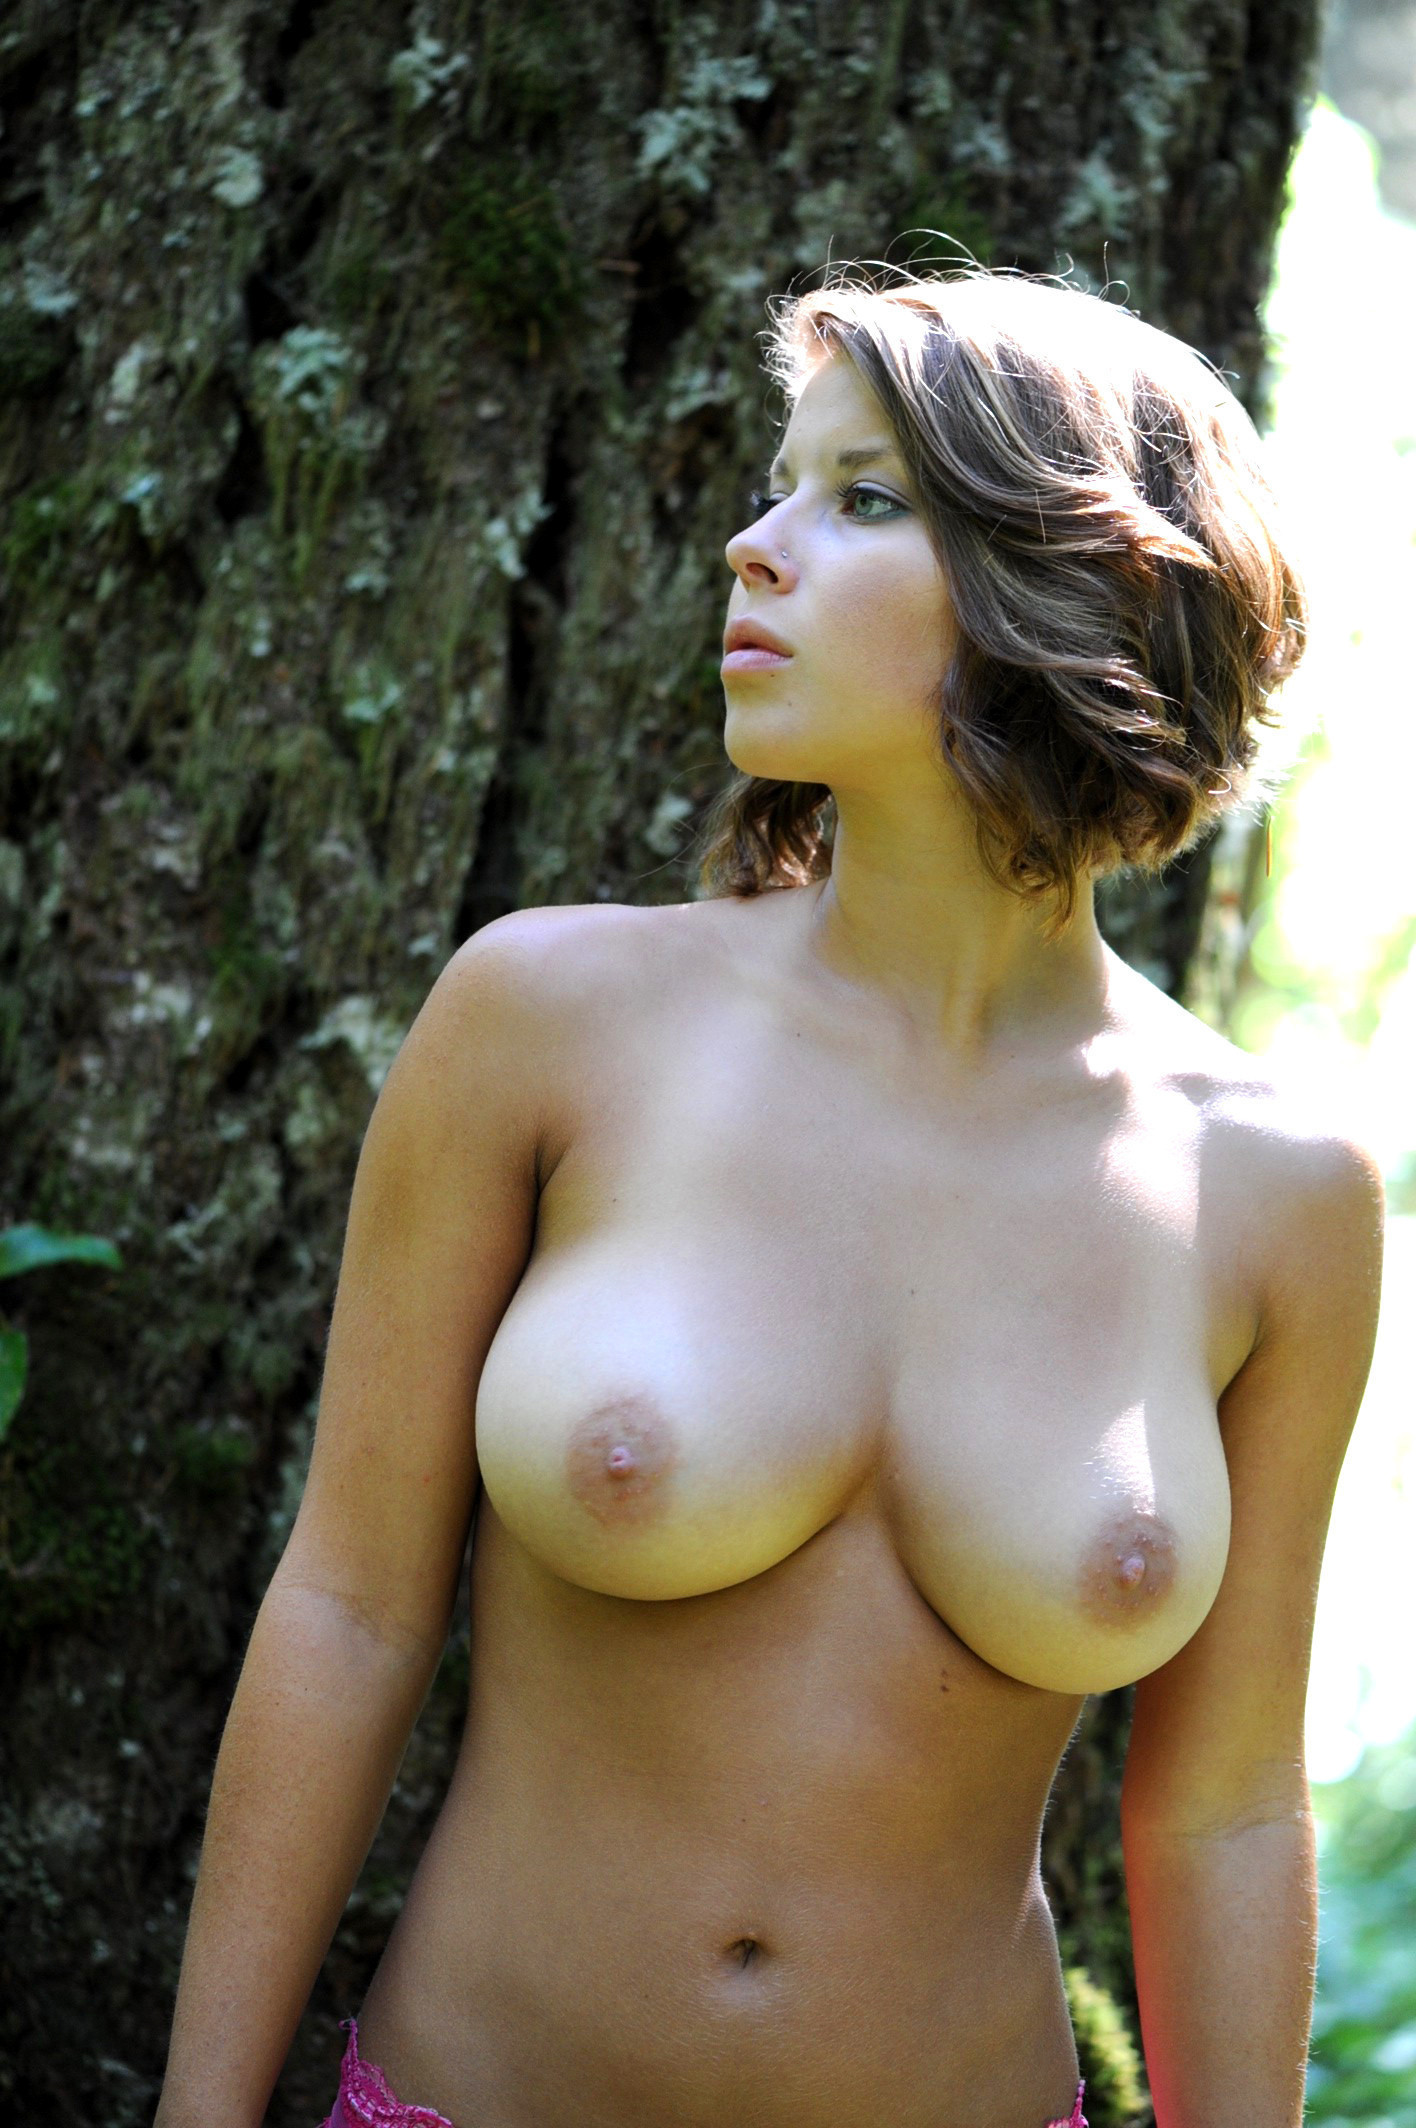 balls deep creampies free porn tube watch download #brunette #girlswithglasses #glasses #hot #nipplequeen #nipples #oil #oilyass #oilyboobs #oilylegs #oilytits #onherstomach #pointynipples #shorthair #smallareolas #tits #welloiled #wet